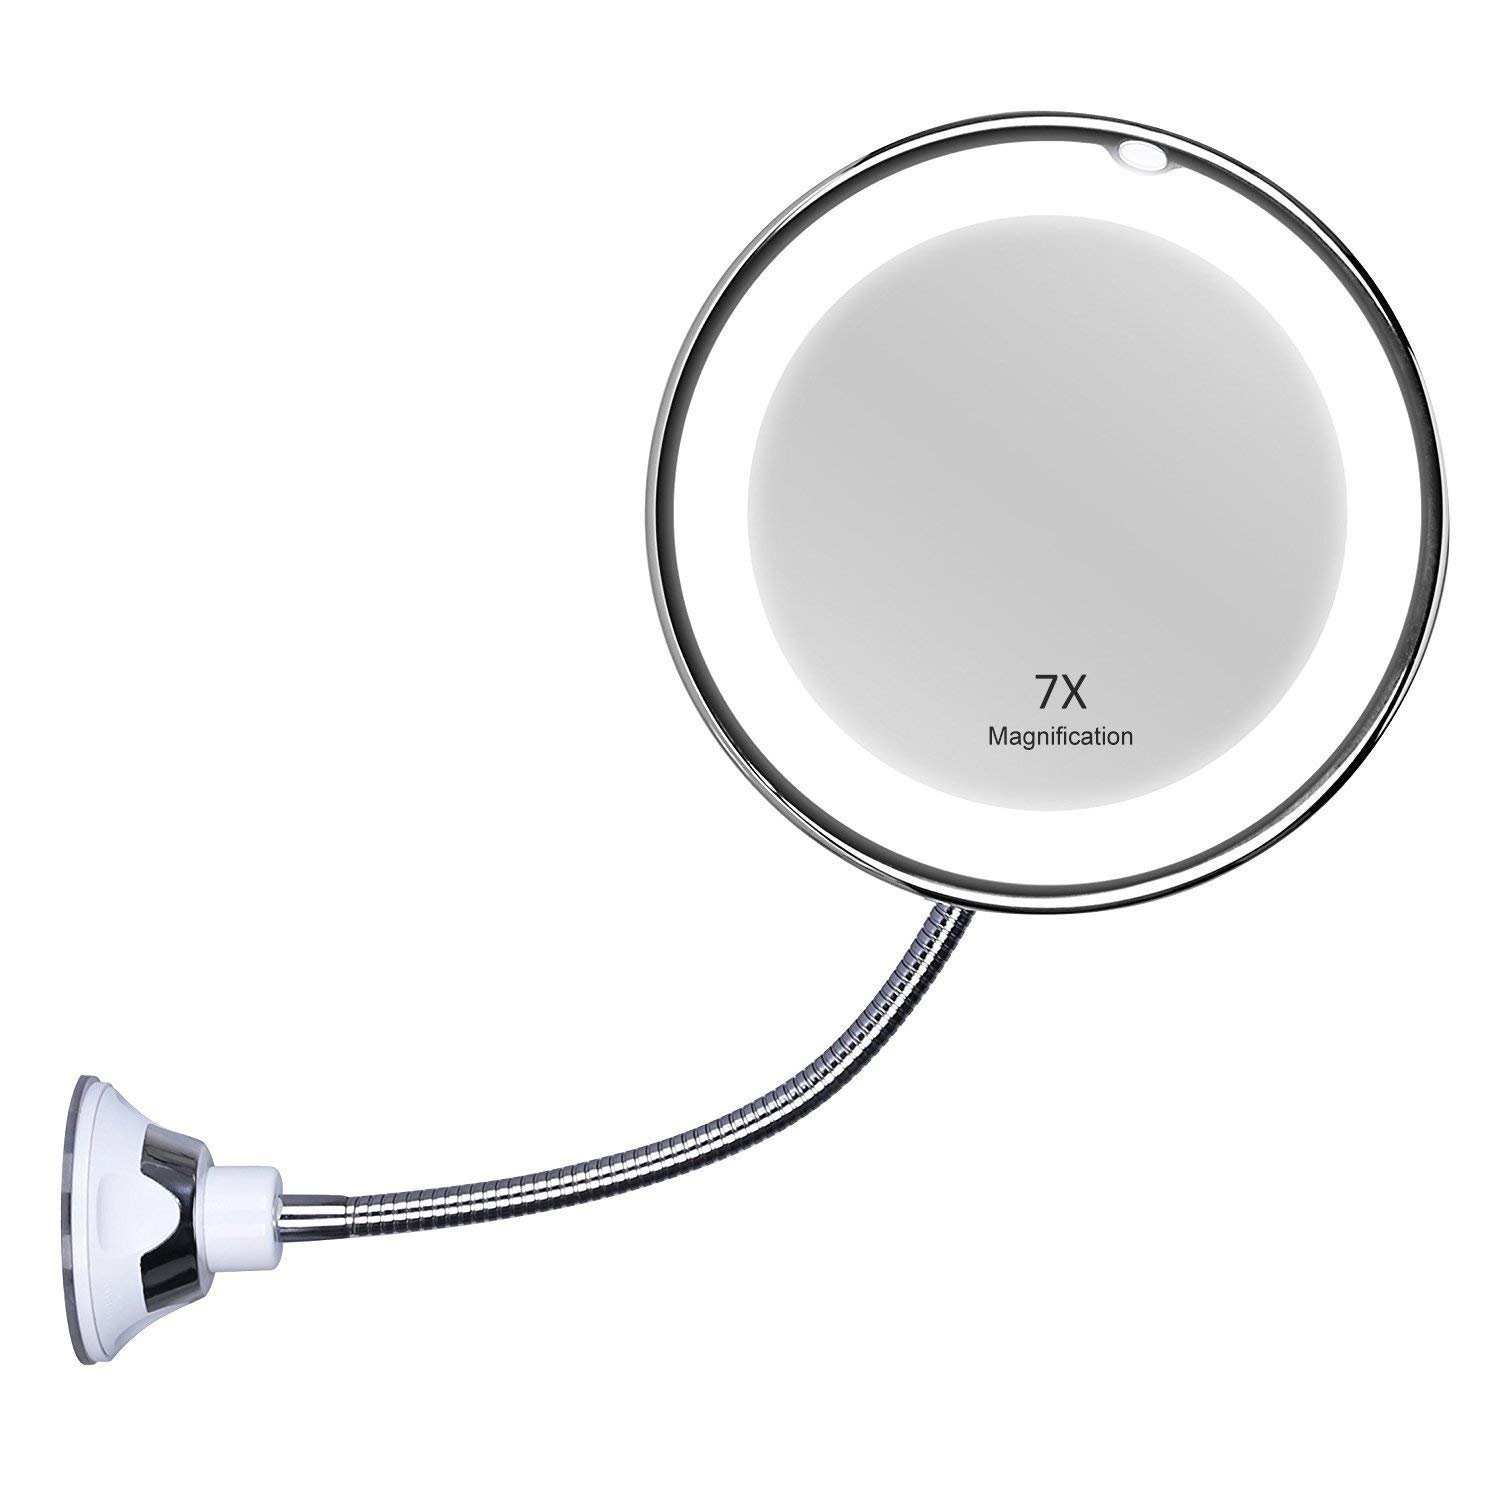 INCOK EM-0002 Mirror, 7X Magnification, This is This is White With A Beautiful Chrome Extension Arm.